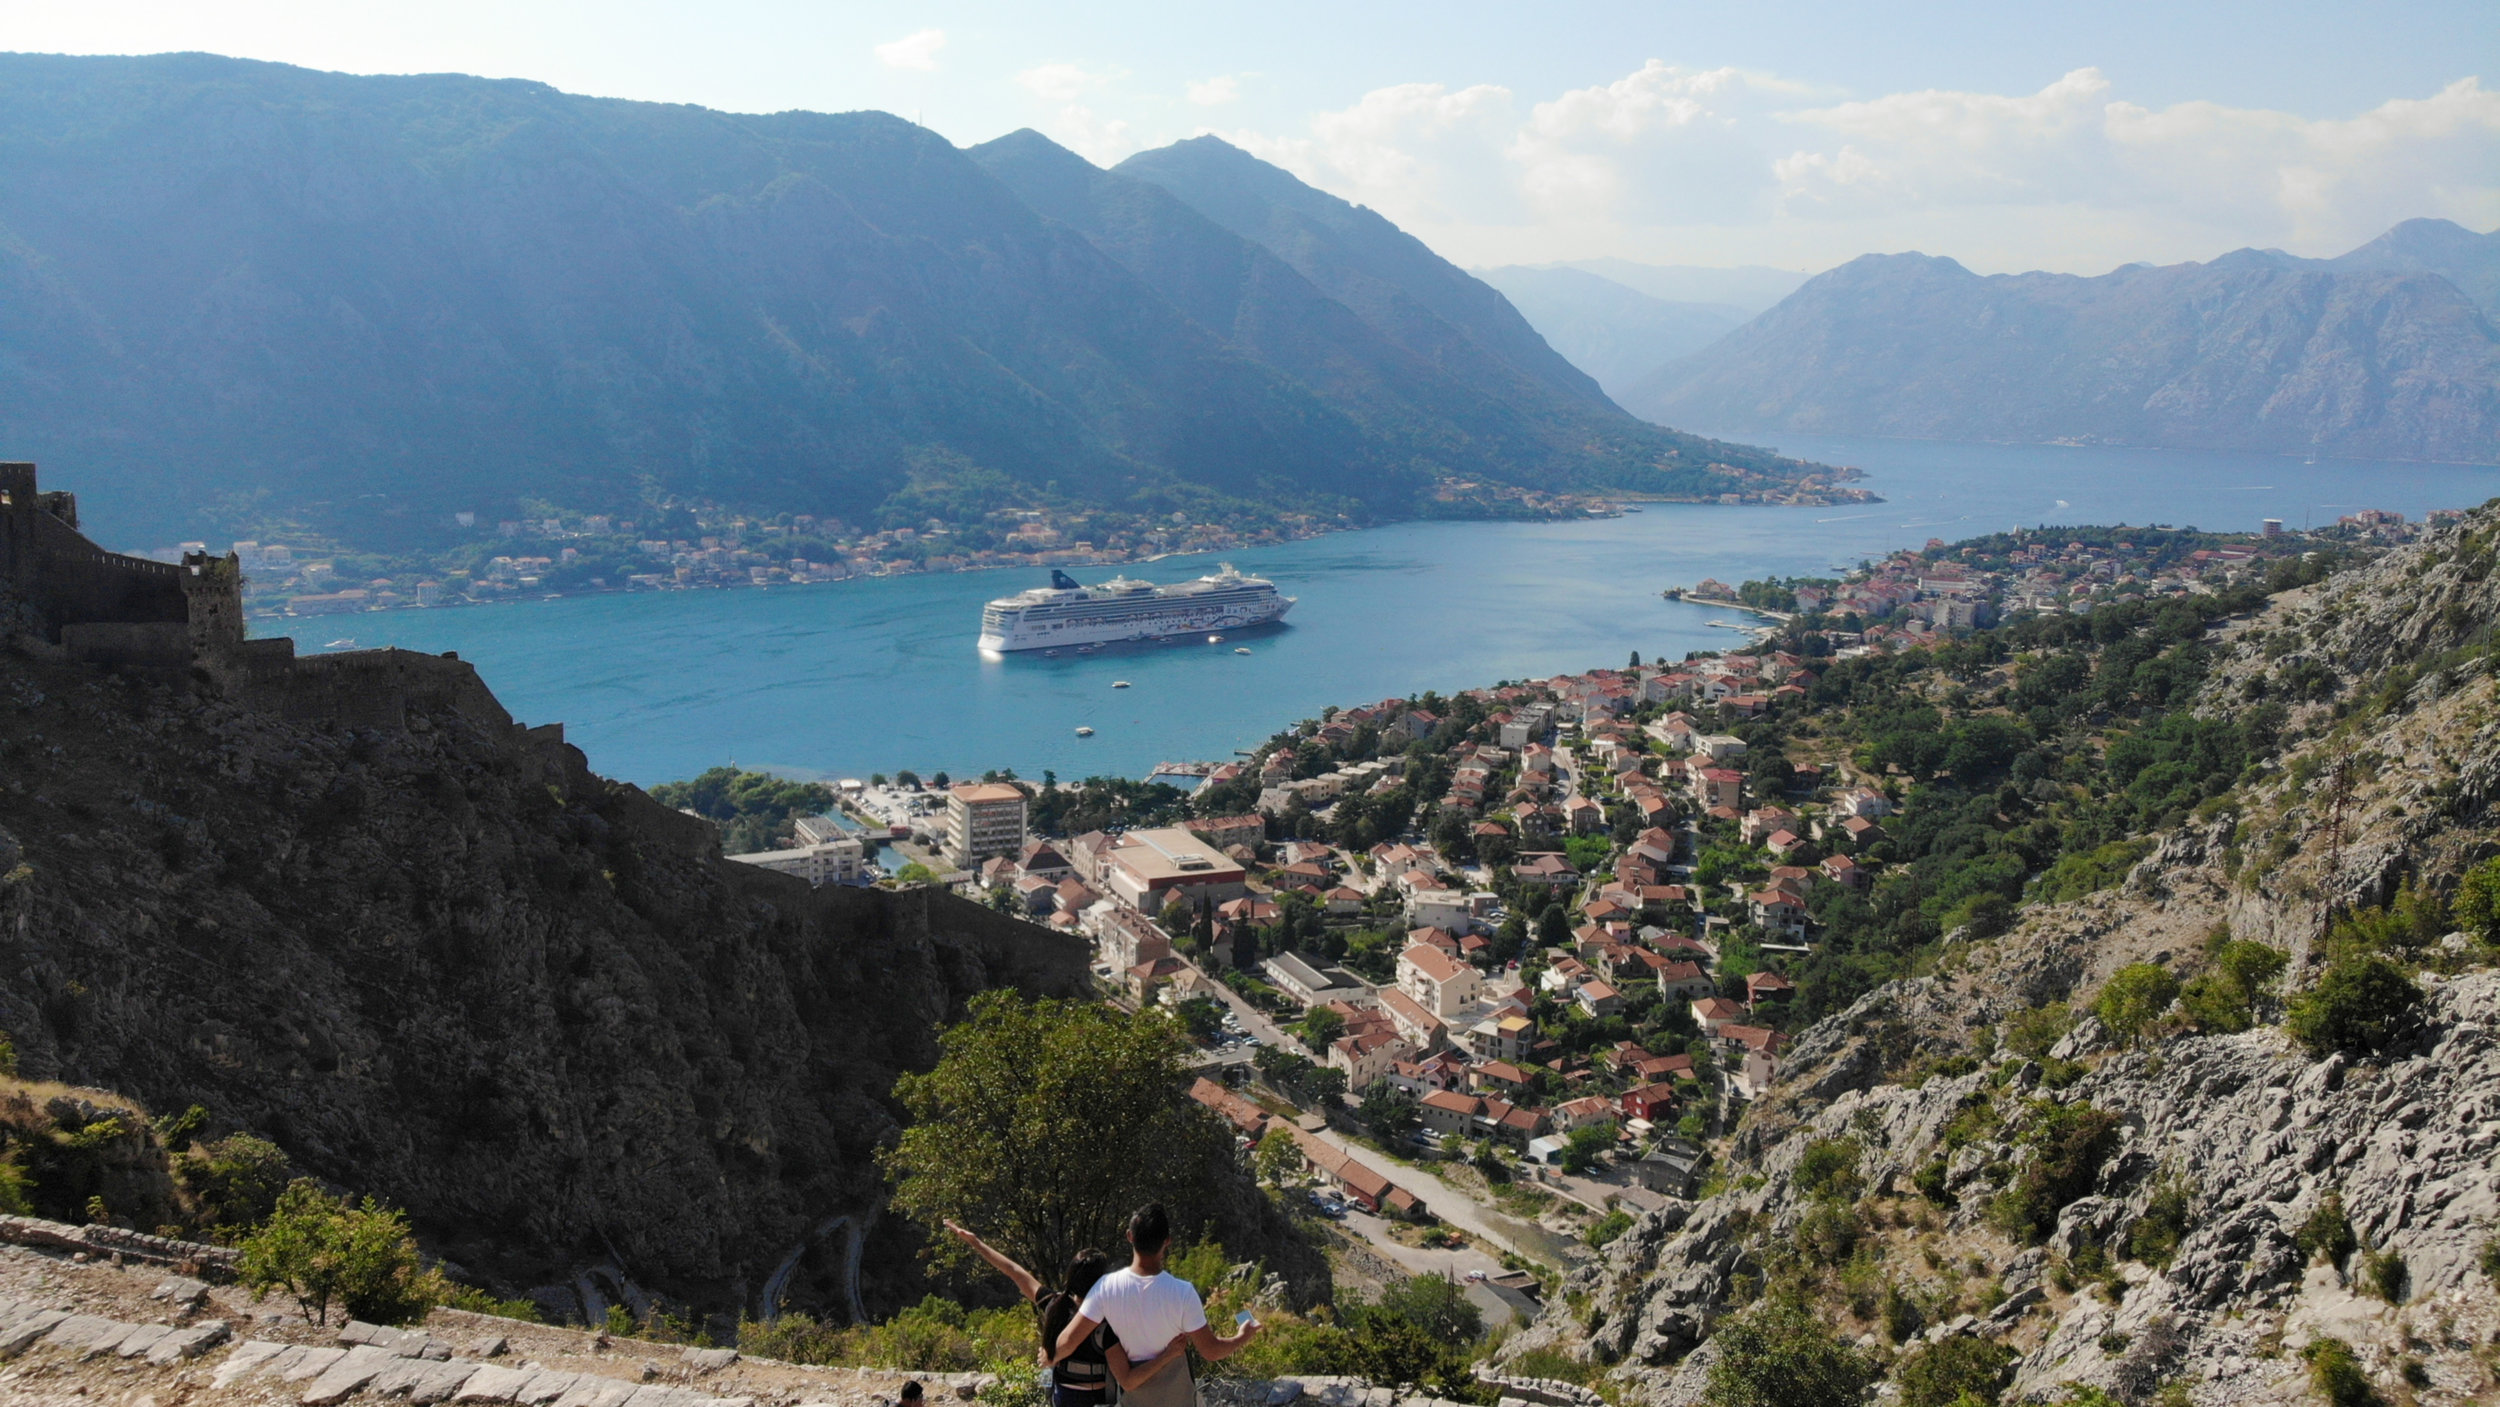 Taking in views of Kotor from up on the trail